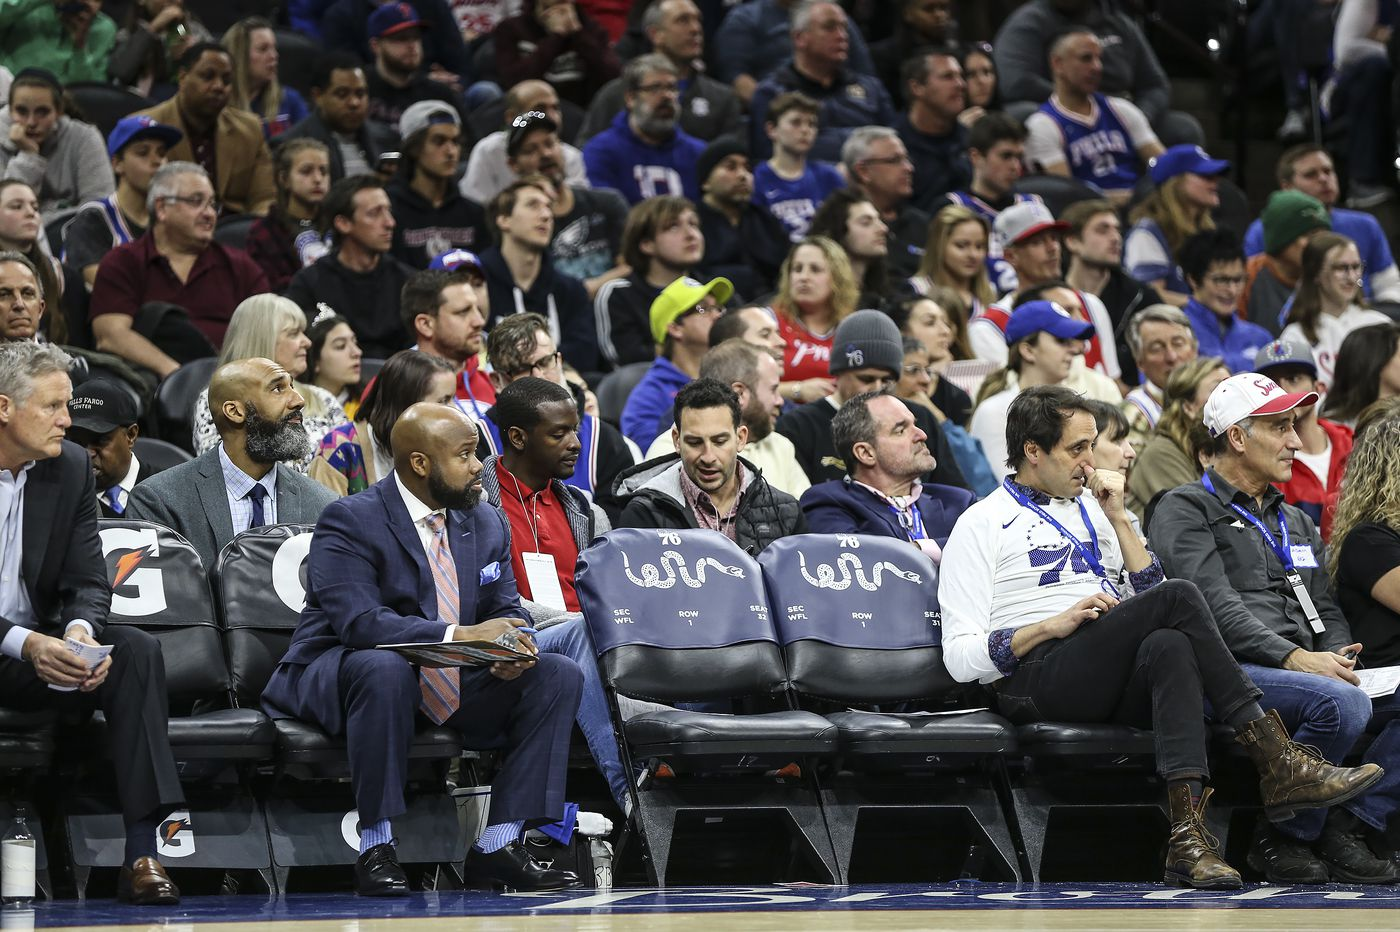 Sixers owner Josh Harris absent on a night team should not have played due to coronavirus pandemic | David Murphy